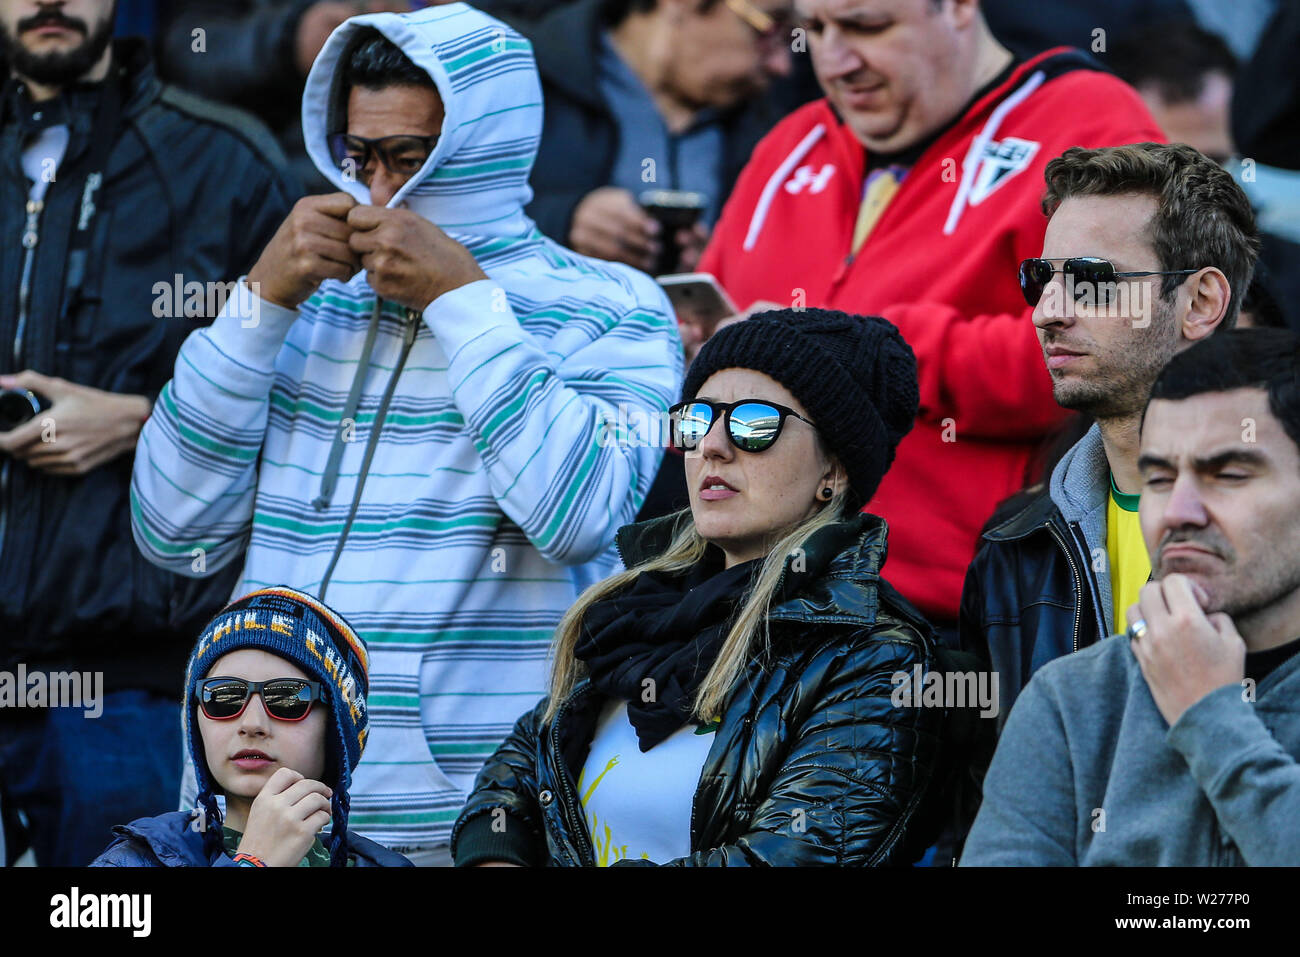 Brazil. 6th July, 2019. Fans in the Game of the match between Argentina X Chile valid for third place dispute of Copa America 2019, in the Arena Corinthians, in São Paulo, this Saturday (06). Photo: Geraldo Bubniak Credit: Geraldo Bubniak/ZUMA Wire/Alamy Live News - Stock Image